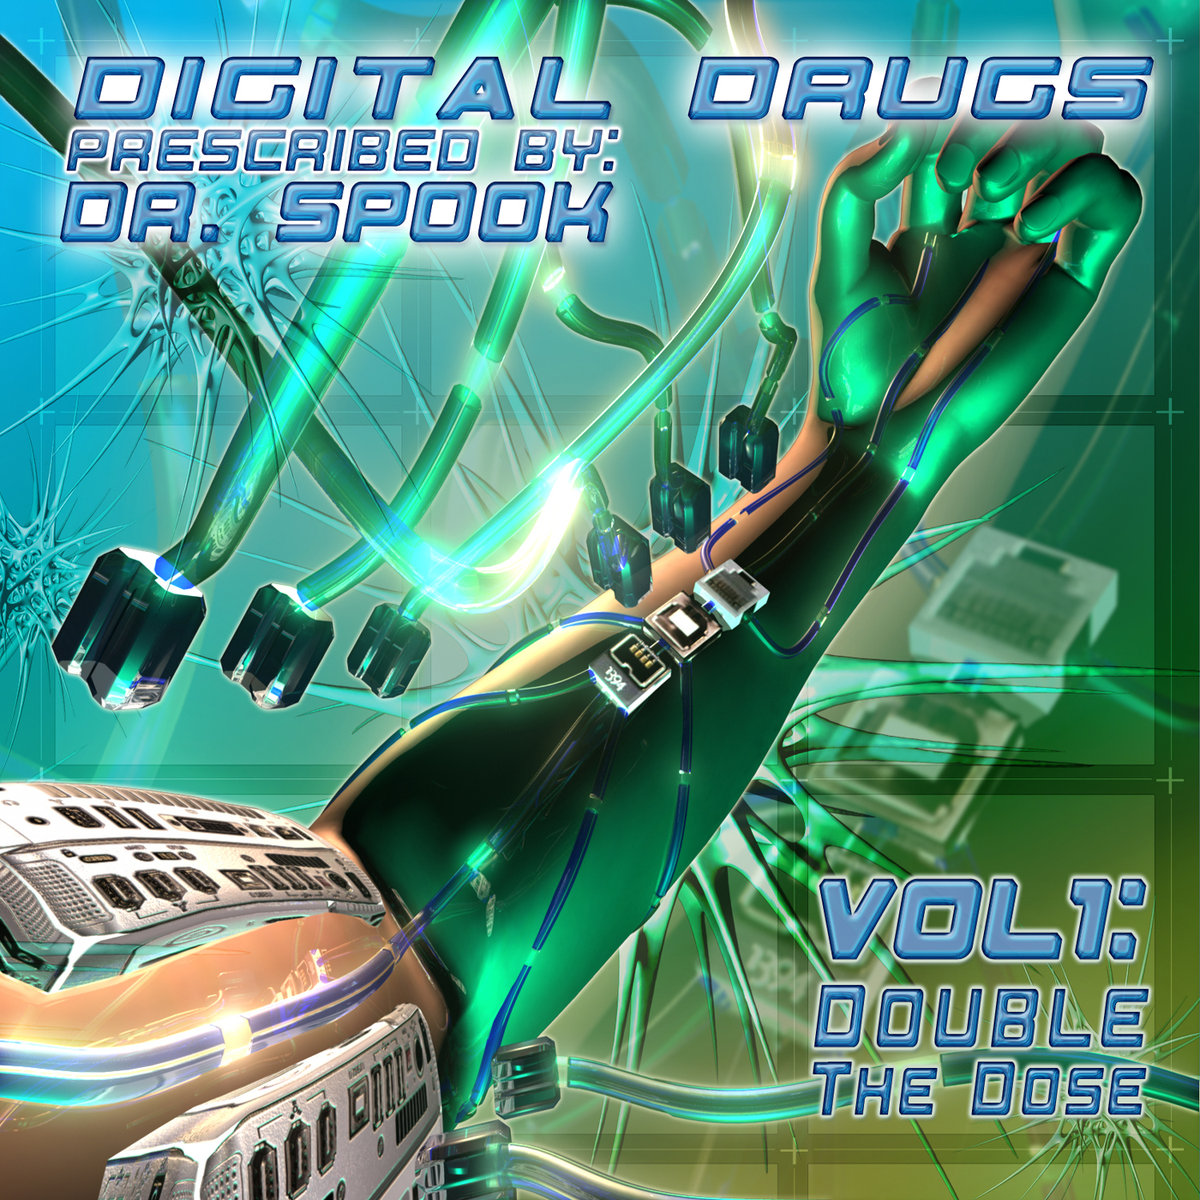 Psychoz - Termology (Remix) @ 'Various Artists - Digital Drugs Vol.1: Double the Dose (Prescribed by Dr. Spook)' album (electronic, goa)